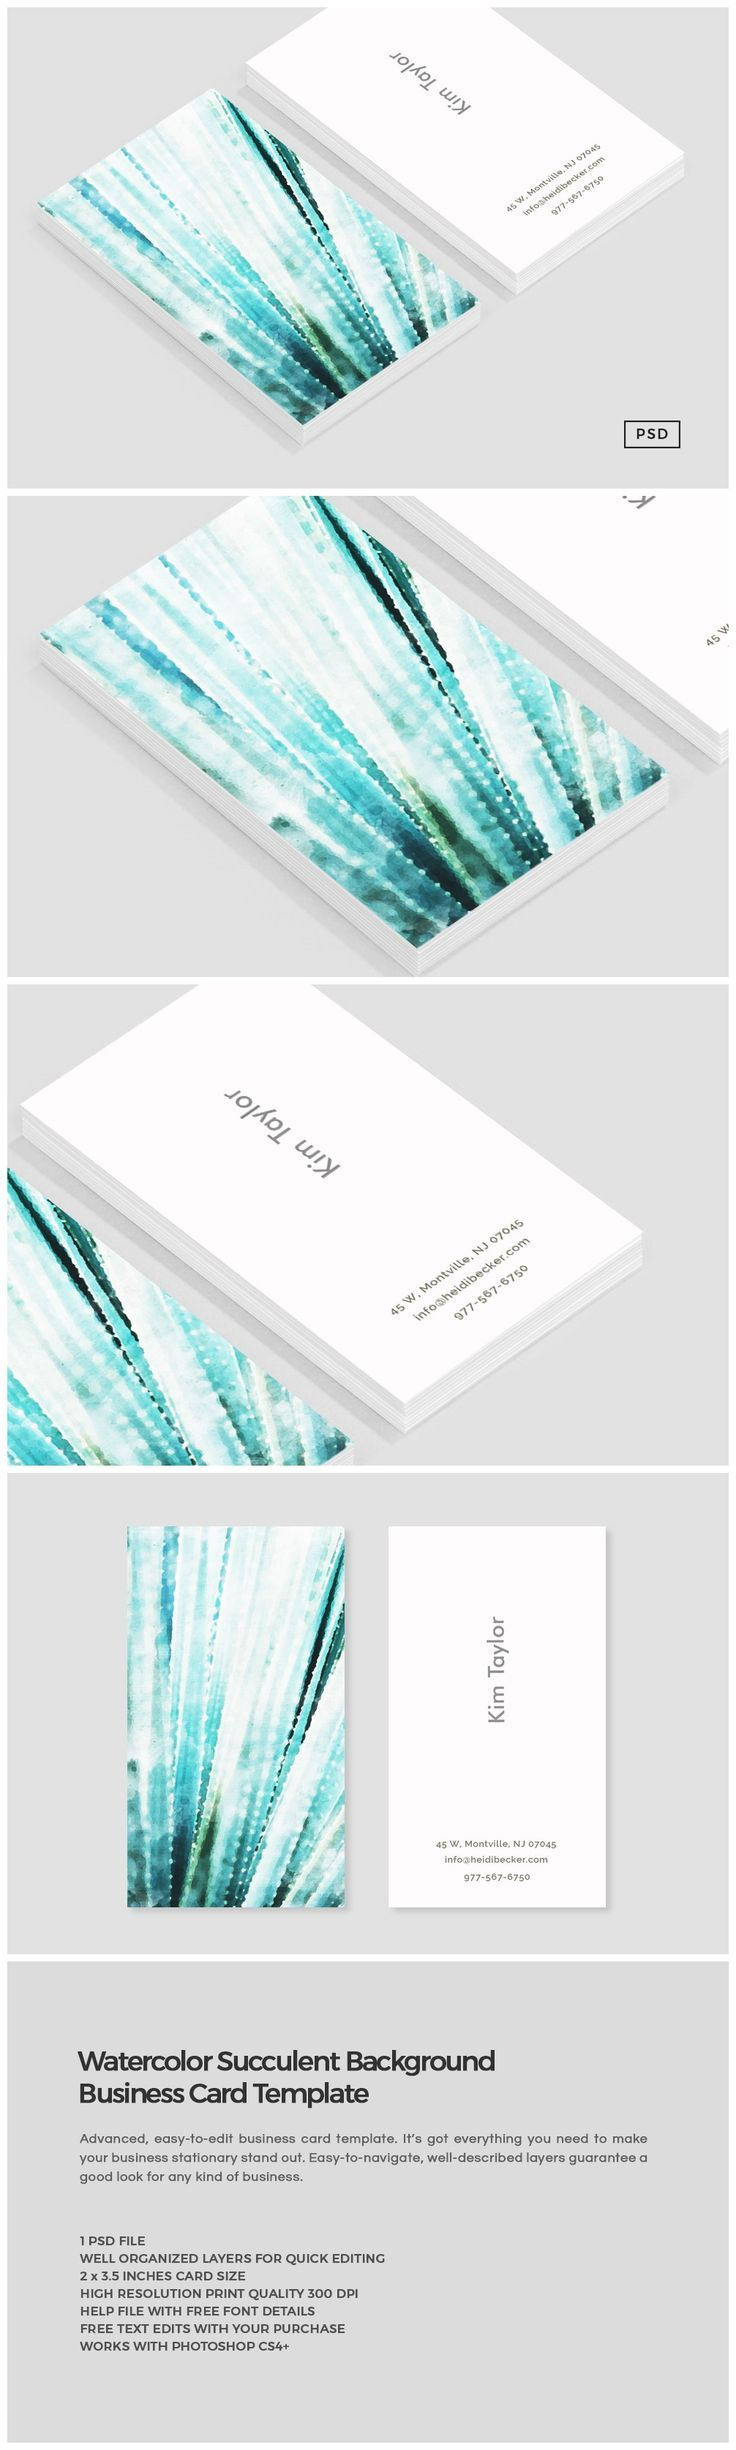 Nice 15 Year Old Resume Template Big 16 Oz Tumbler Template Regular 1st Job Resume Examples 2 Inch Hexagon Template Old 2 Page Resume Format Doc Blue2 Page Resume Sample Format 25  Best Ideas About Business Card Design Templates On Pinterest ..